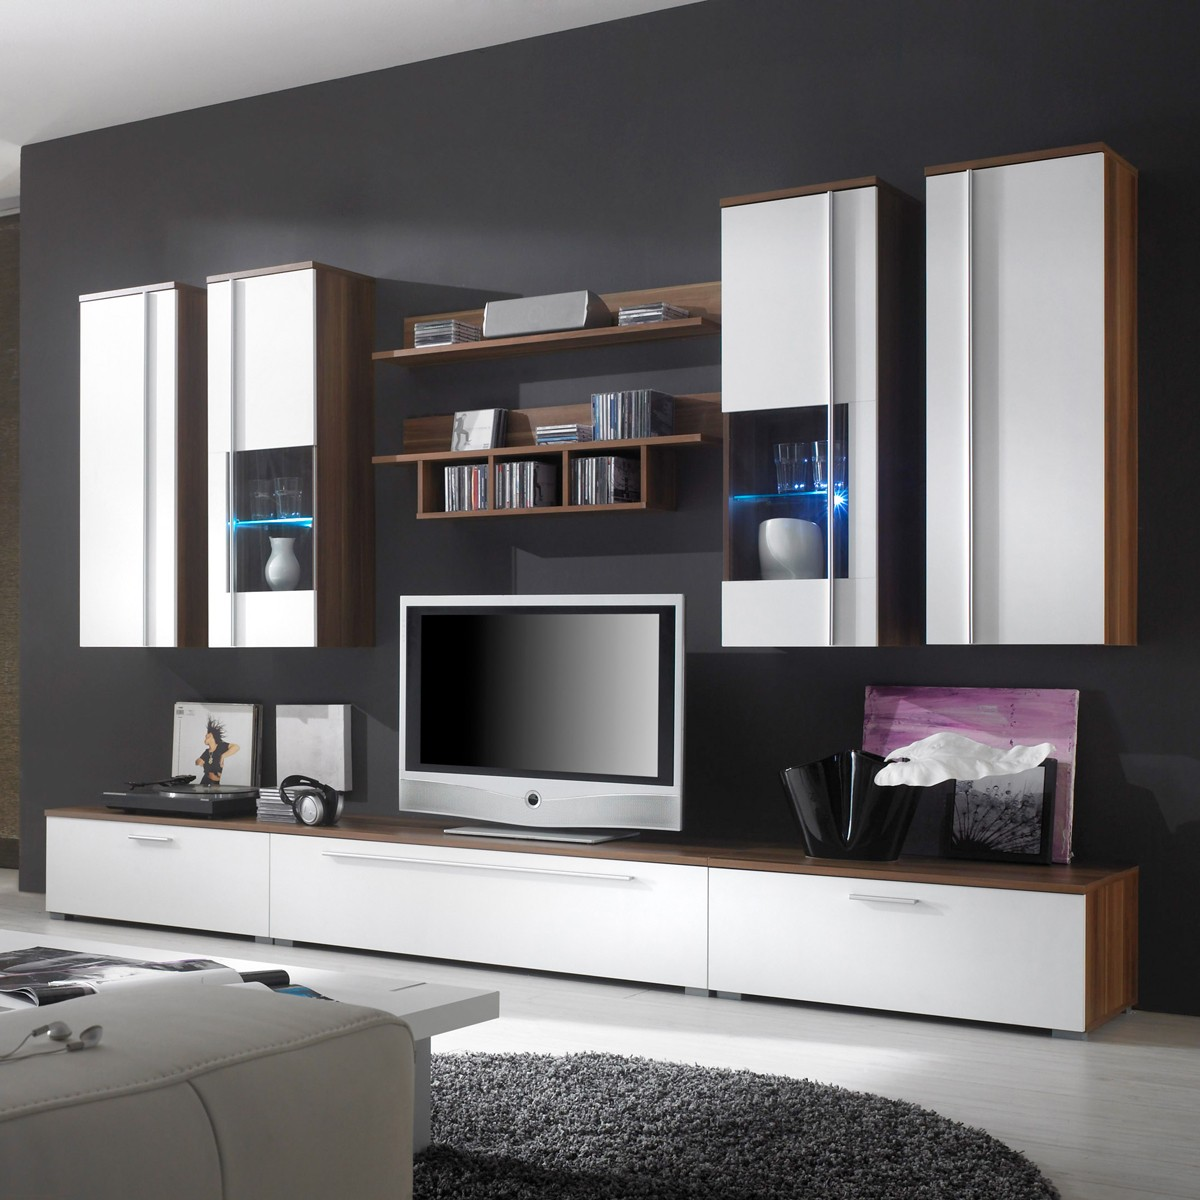 wohnwand anbauwand schrankwand bella in nussbaum wei ebay. Black Bedroom Furniture Sets. Home Design Ideas